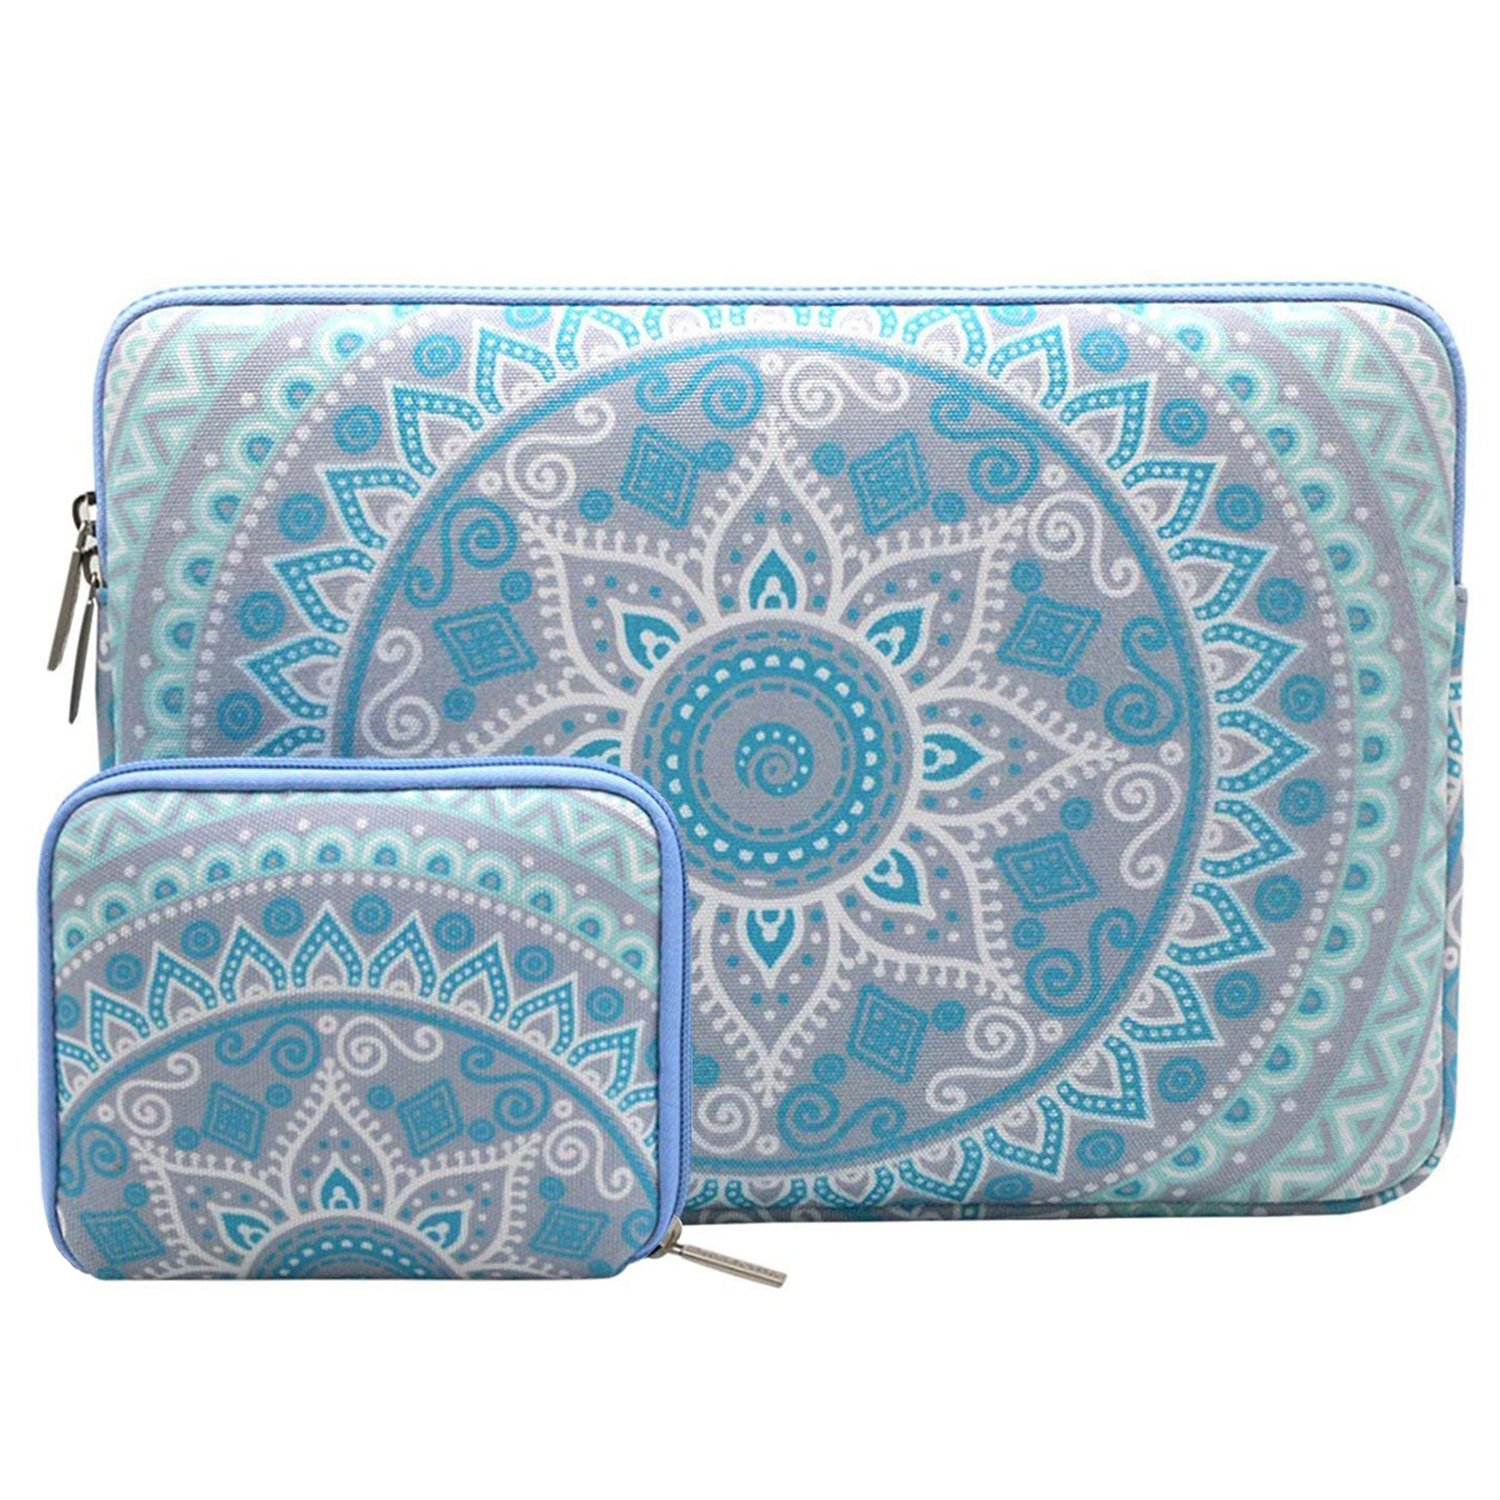 MOSISO Laptop Sleeve Bag Compatible 13-13.3 Inch MacBook Pro, MacBook Air, Notebook Computer with Small Case, Canvas Fabric Mandala Pattern Protective Cover, Mint Green and Blue